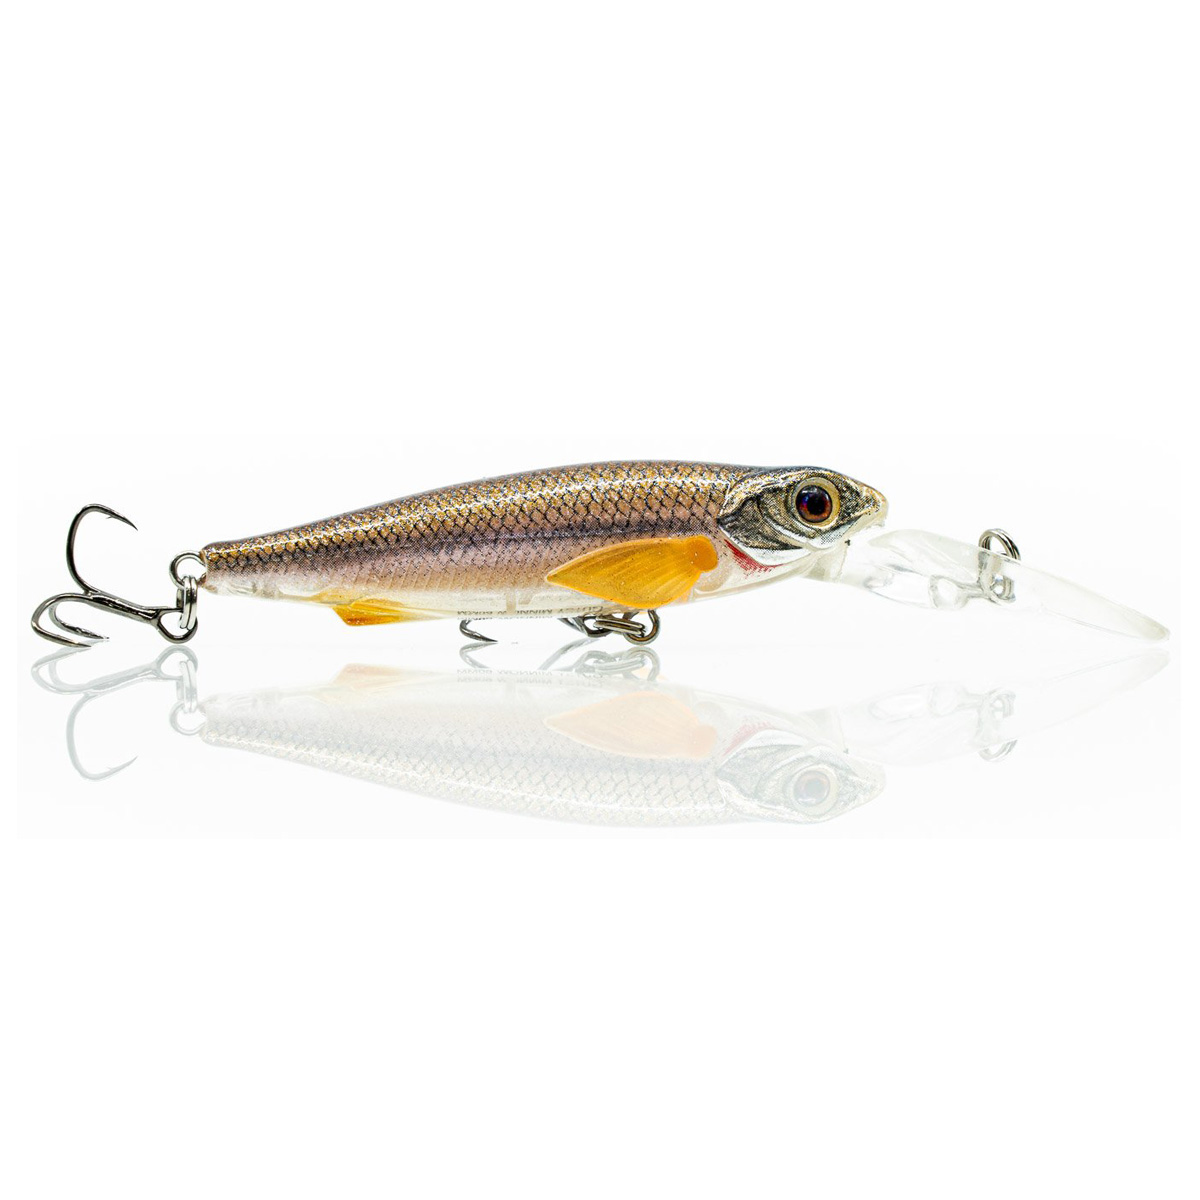 Chasebaits Gutsy Minnow Shallow Hard Body Lure Whiting